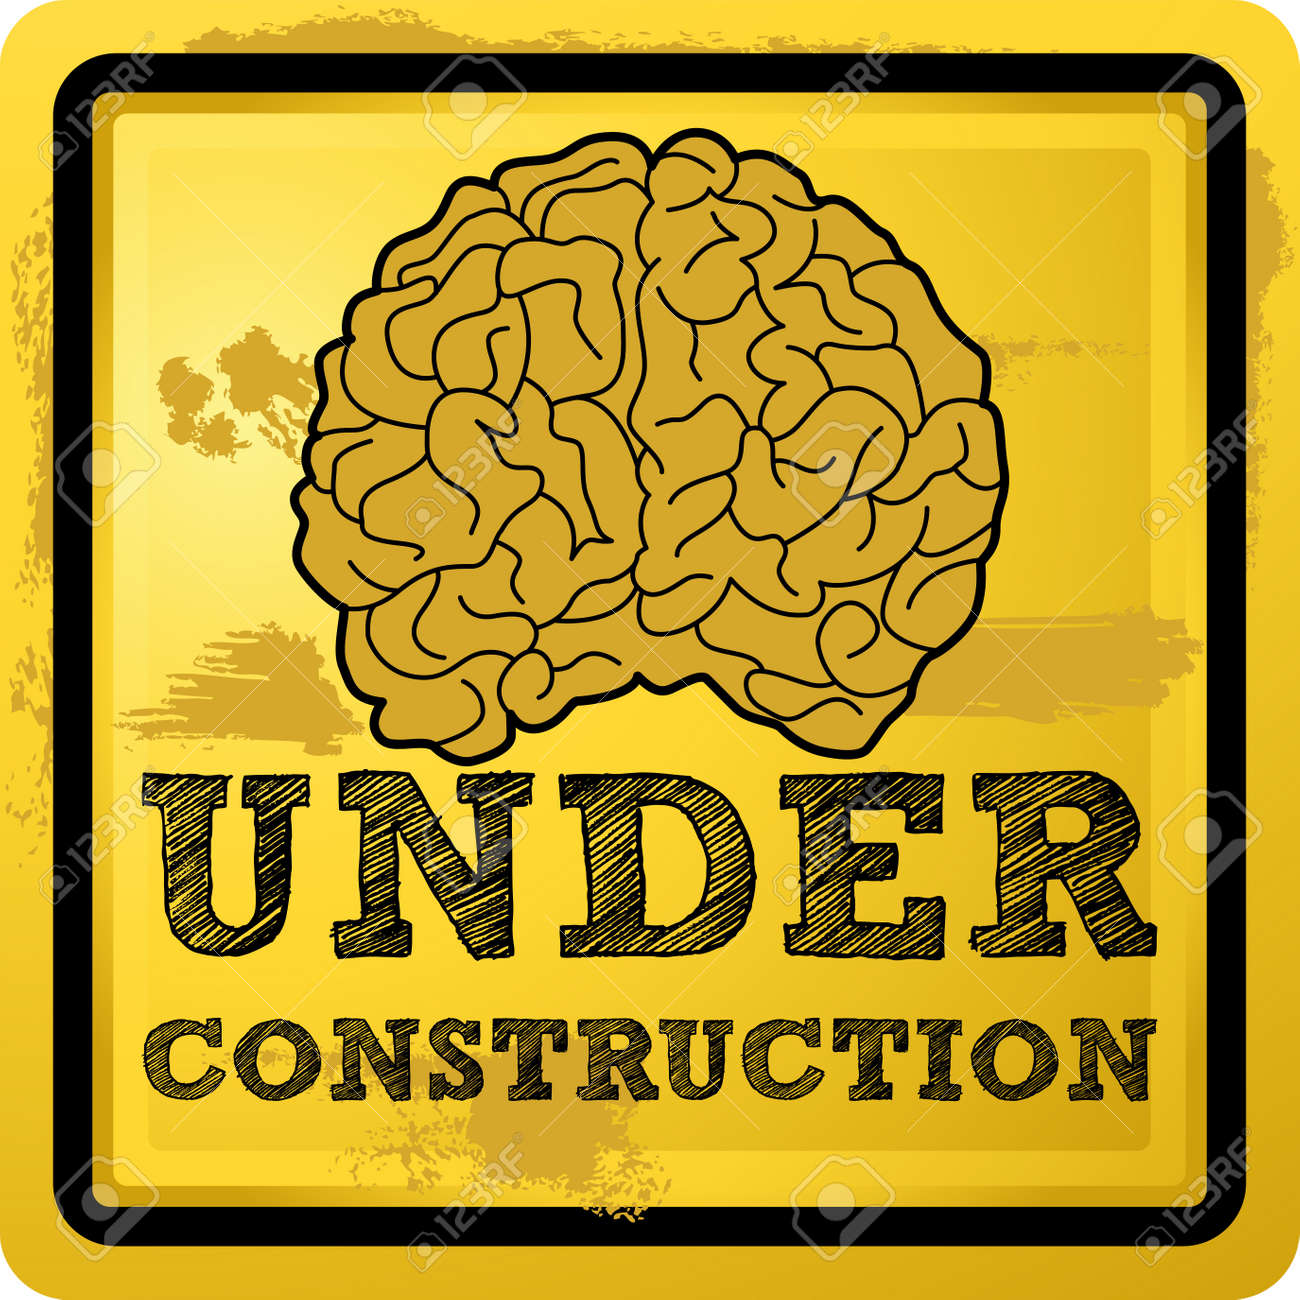 Abstract illustration of a human brain with under construction text over grunge yellow background Stock Vector - 14291676